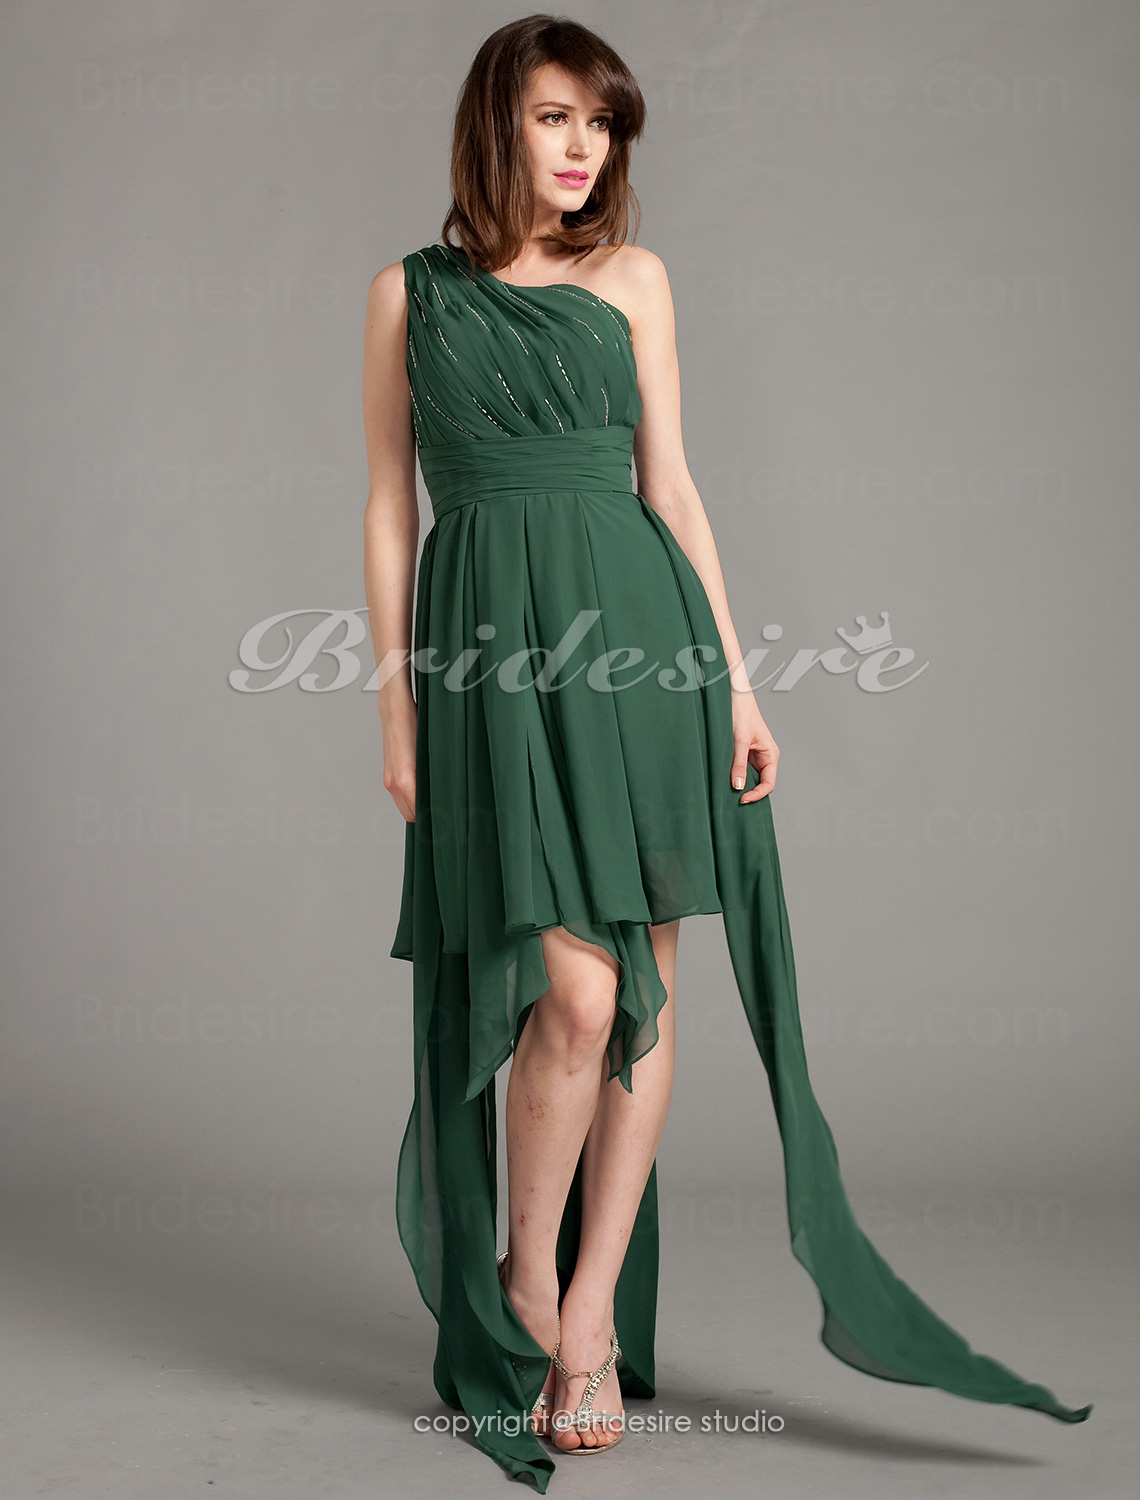 A-line Chiffon Asymmetrical One Shoulder Cocktail Dress